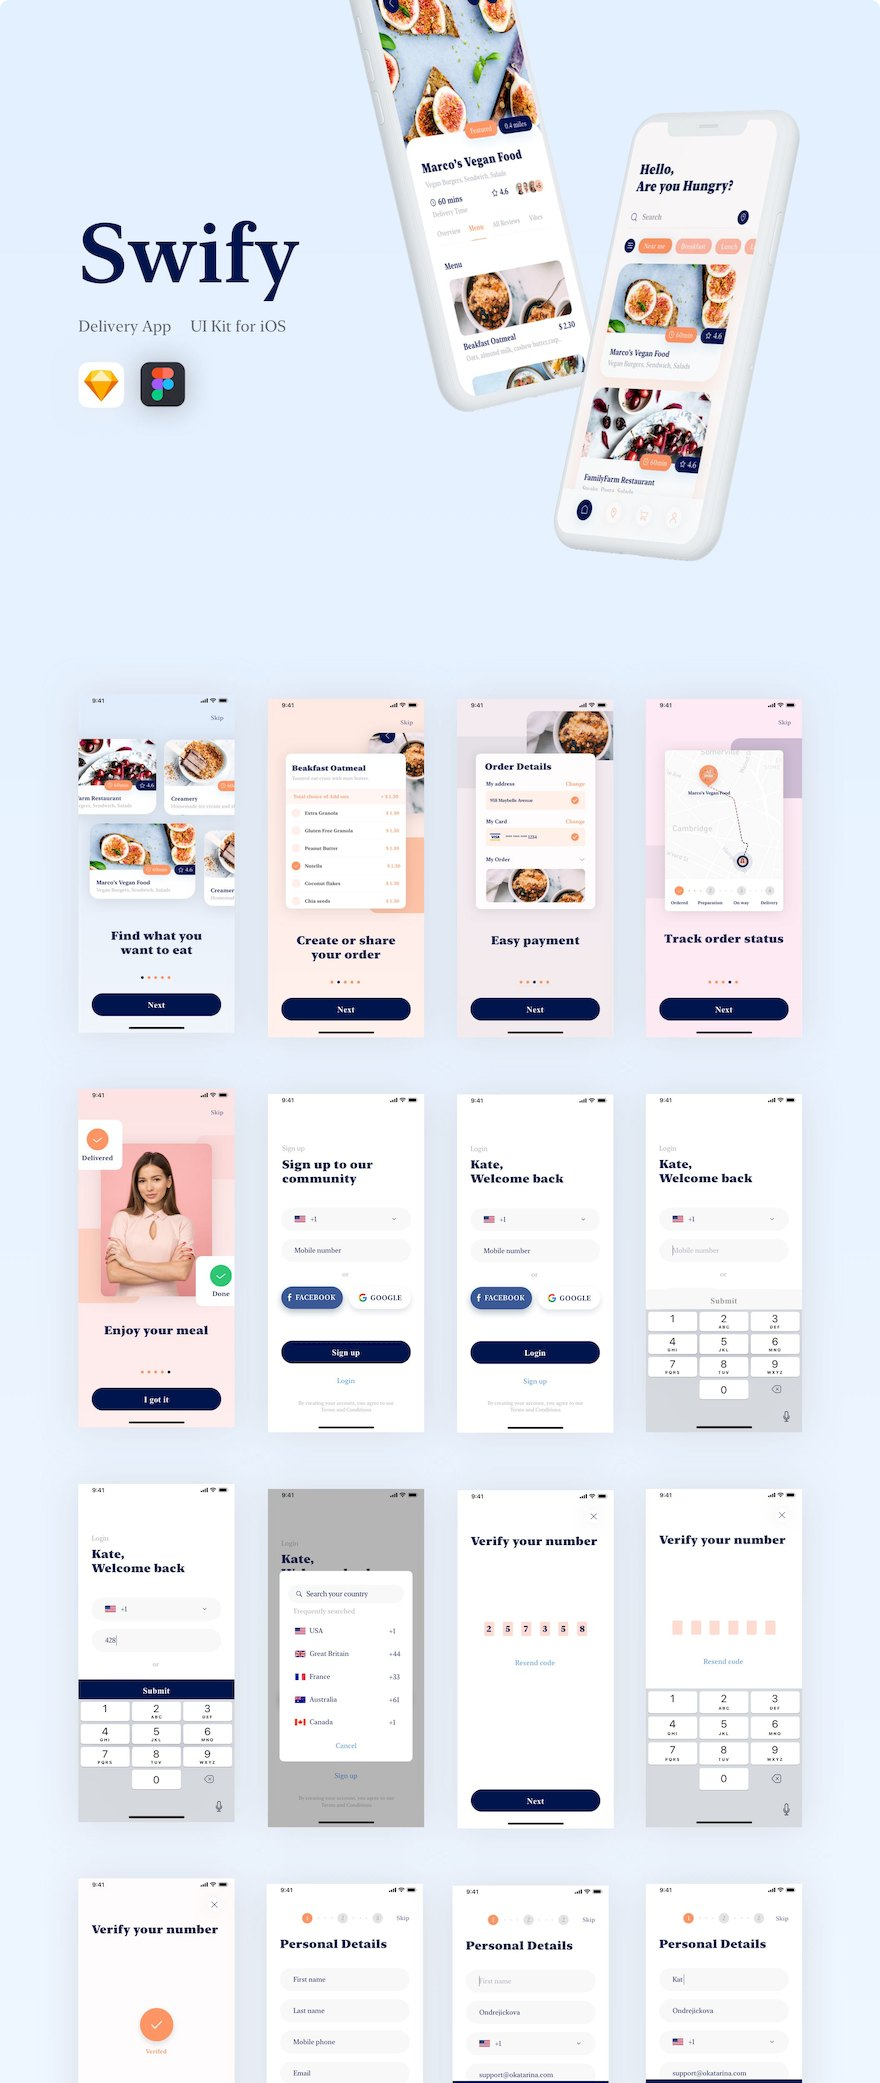 36978 Swify delivery app iOS UI Kit-1.jpg